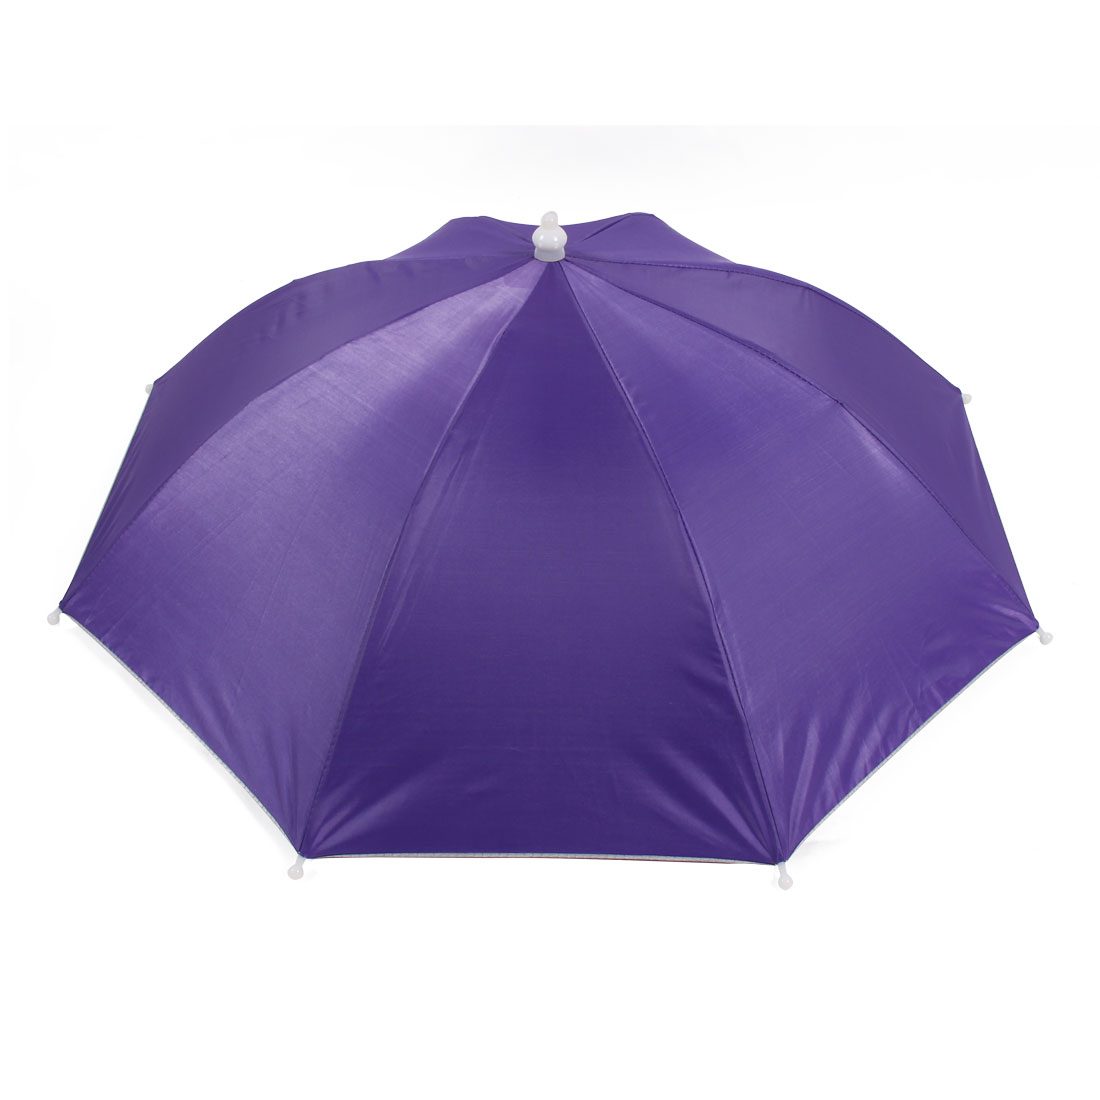 Fishing Camping Hands Free Purple Umbrella Hat Cap